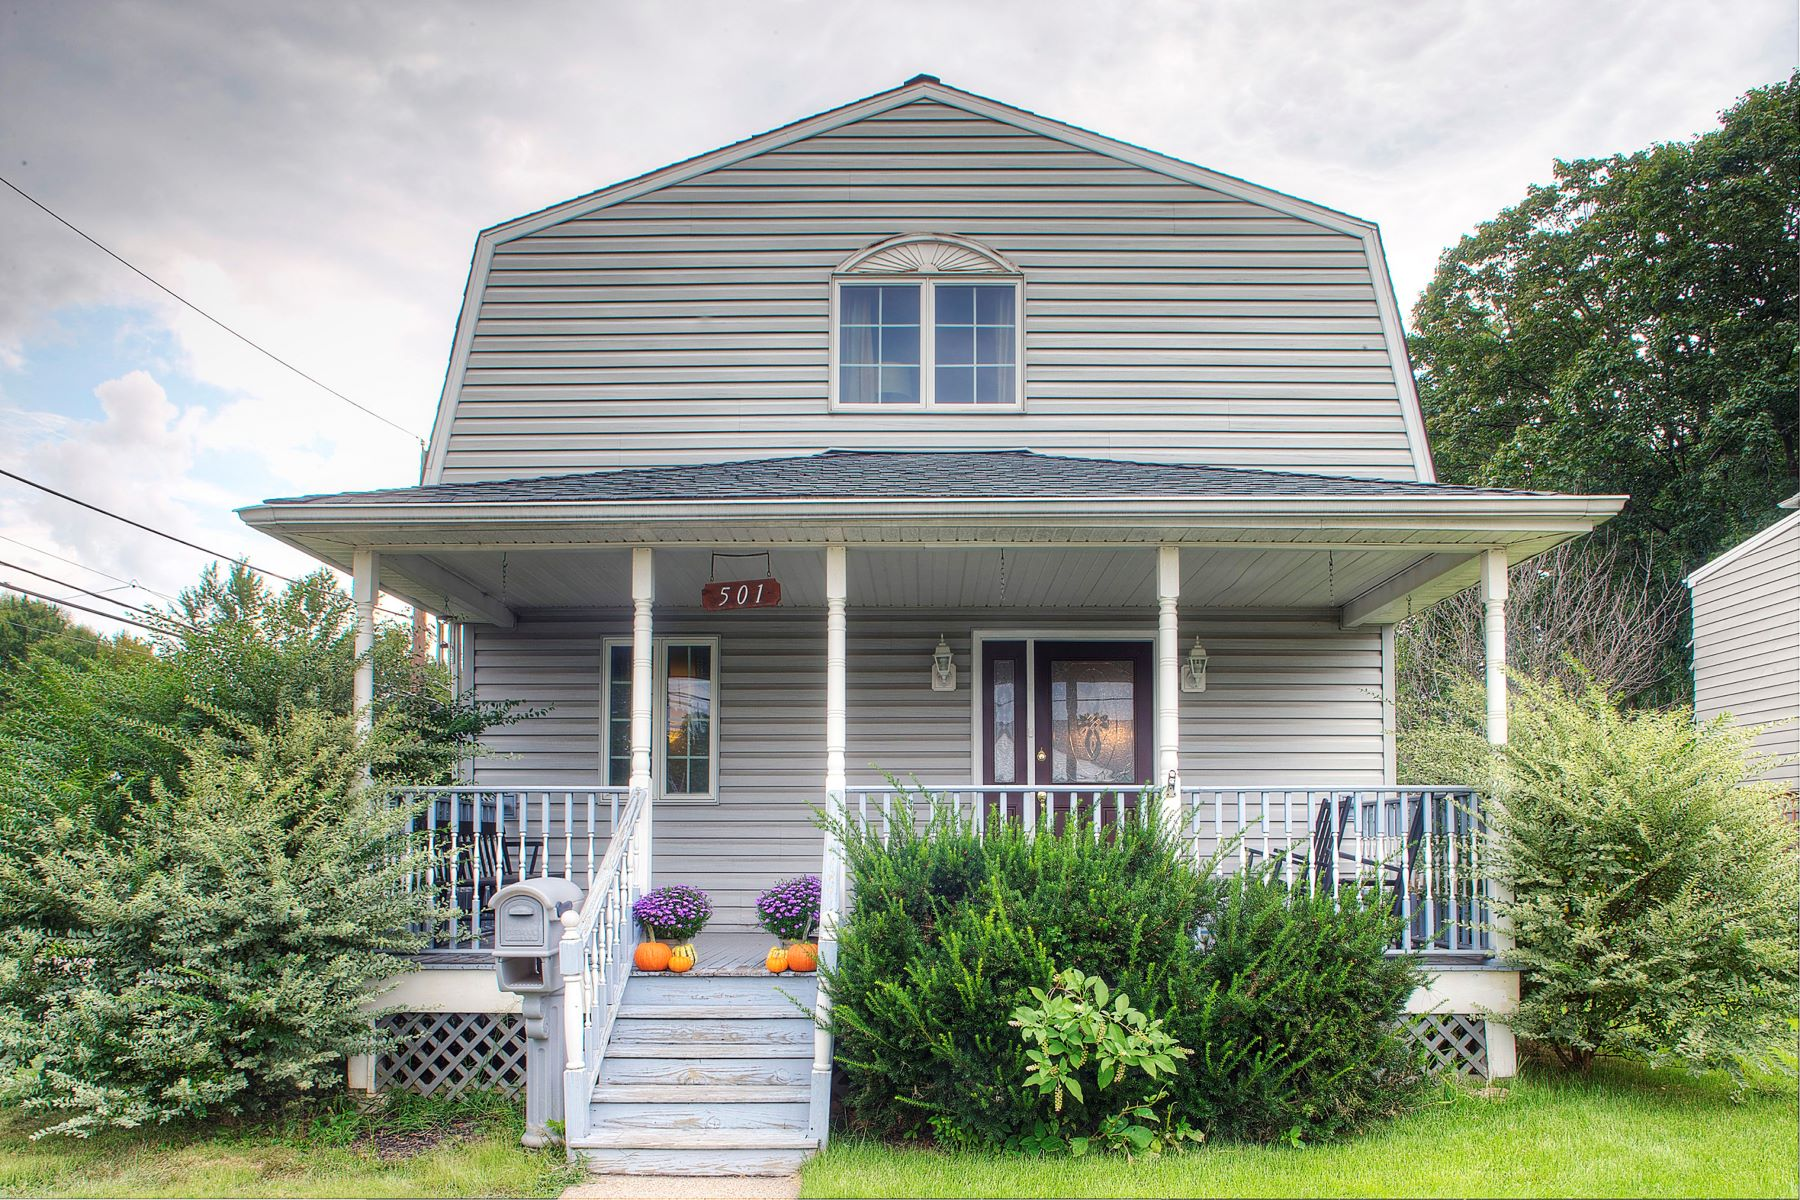 Single Family Homes for Sale at 501 E CENTER AVE Newtown, Pennsylvania 18940 United States